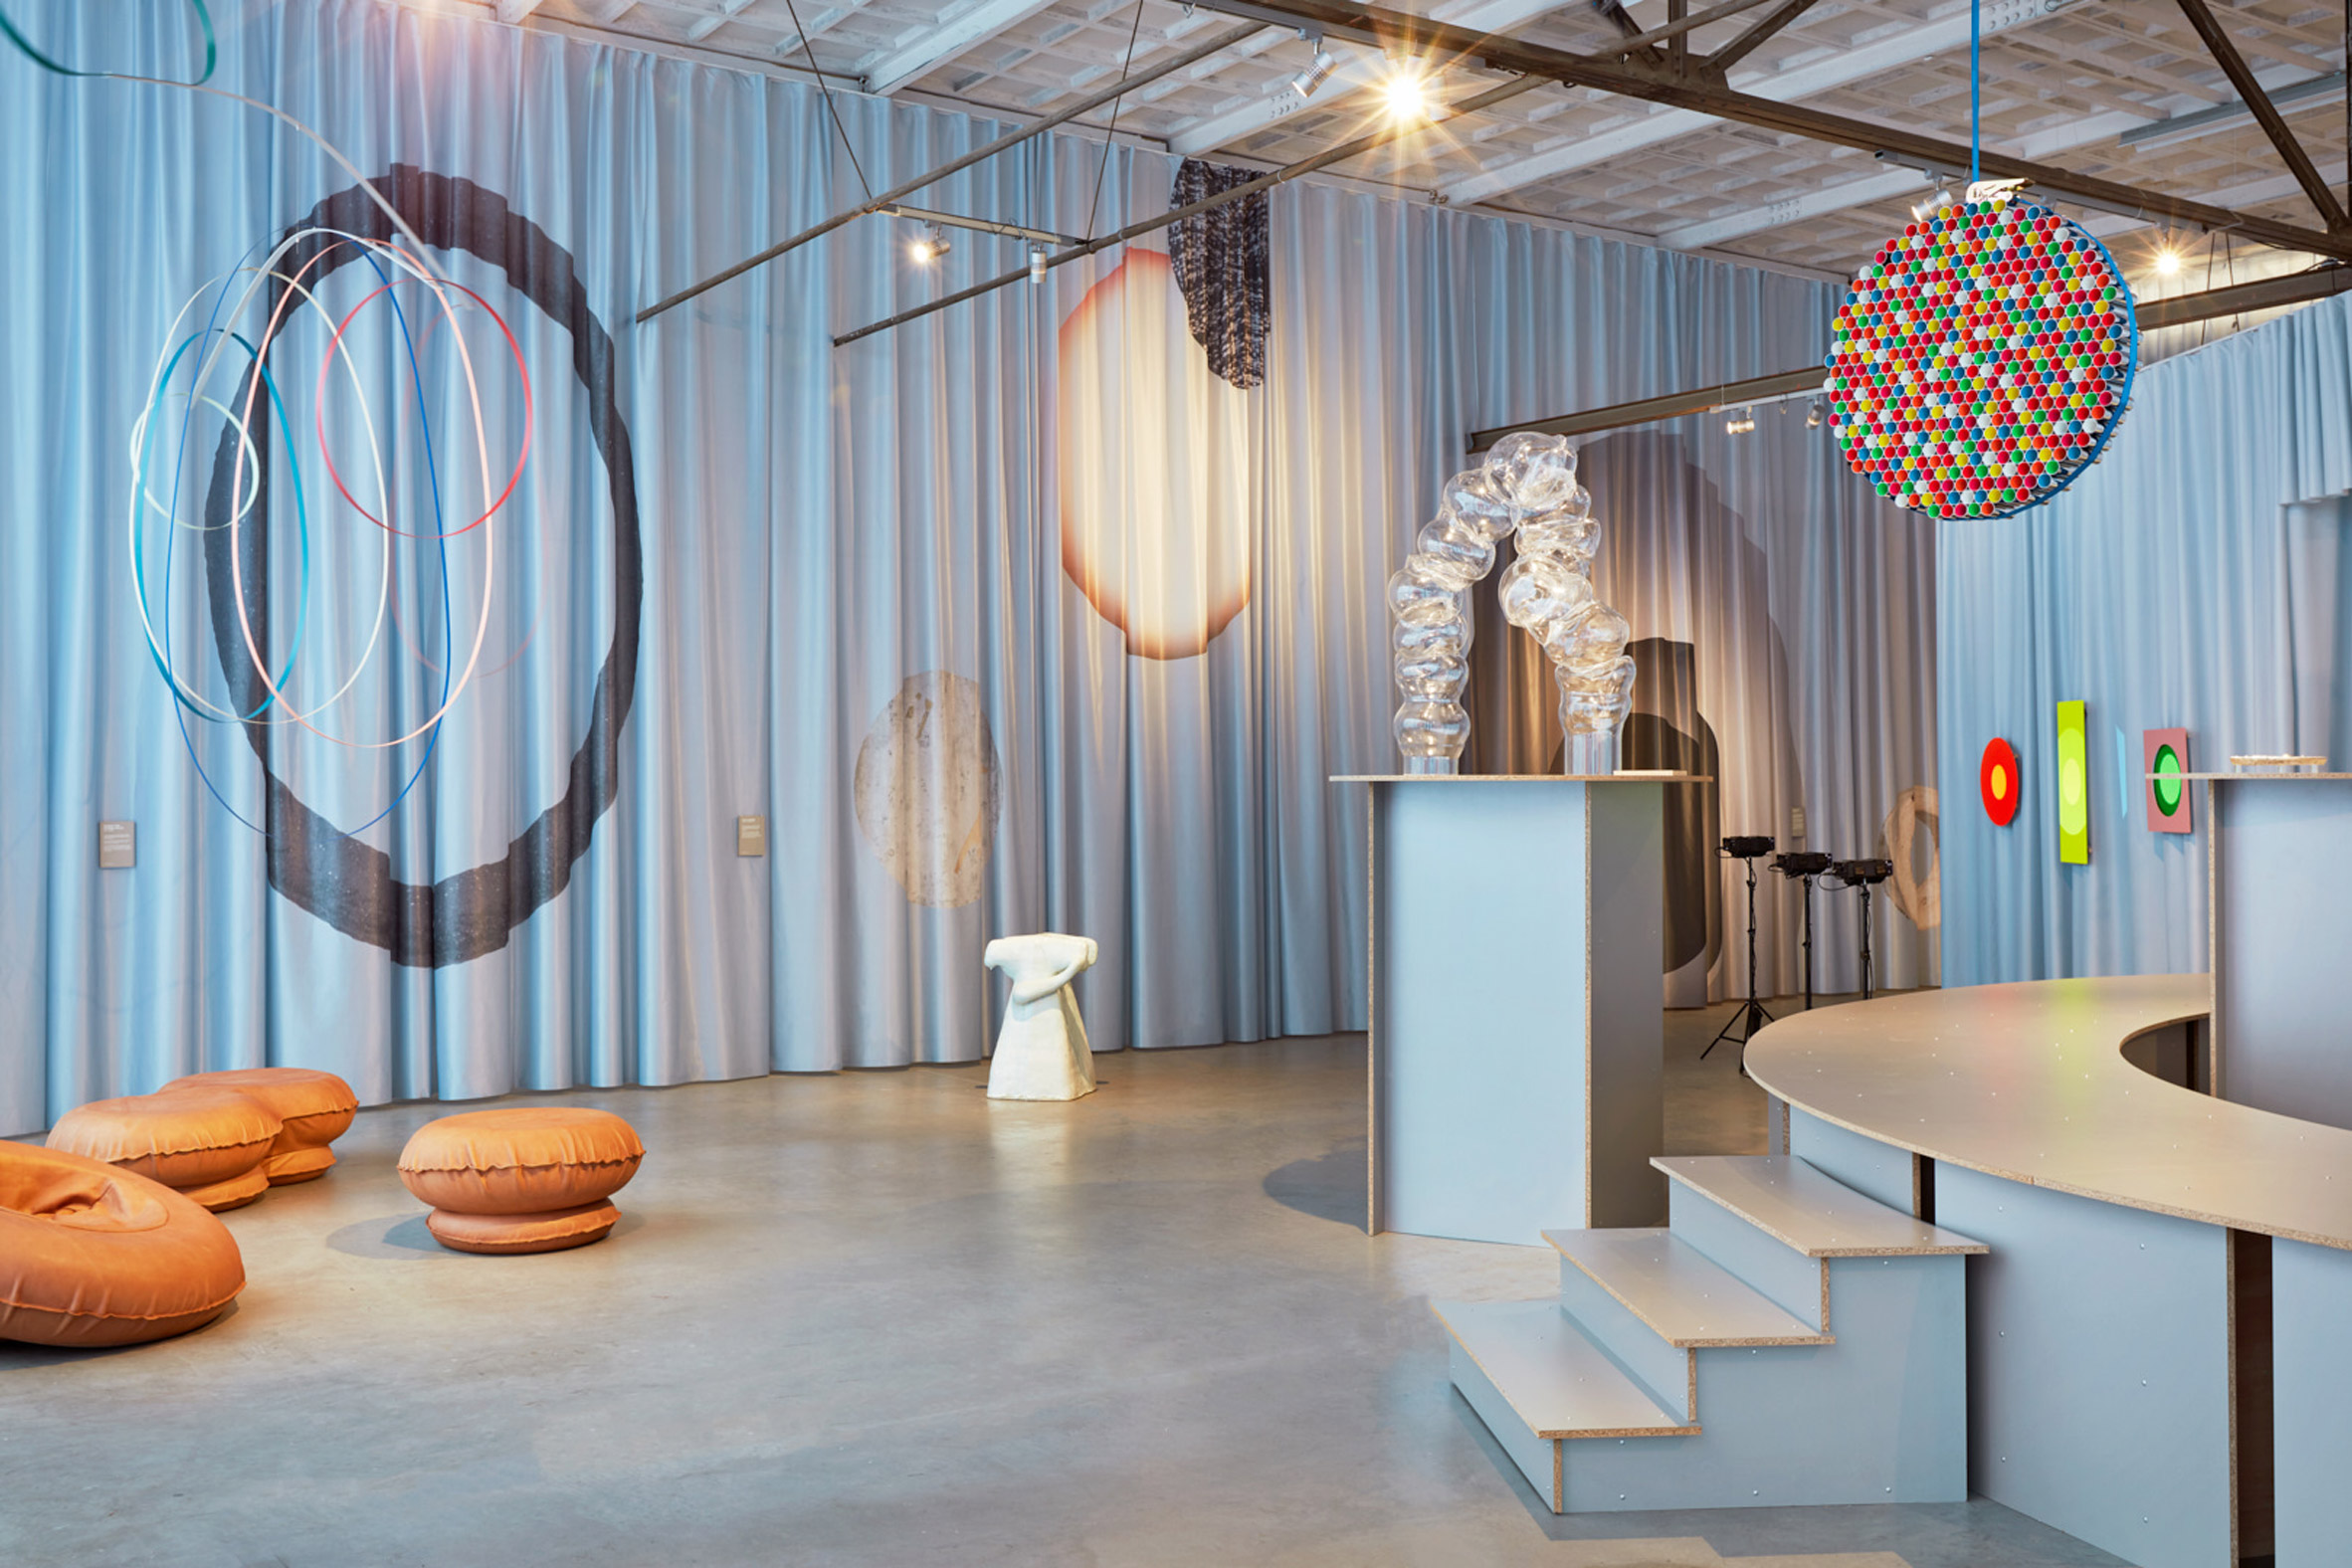 Dutch Invertuals The Circle exhibition presents different takes on the shape